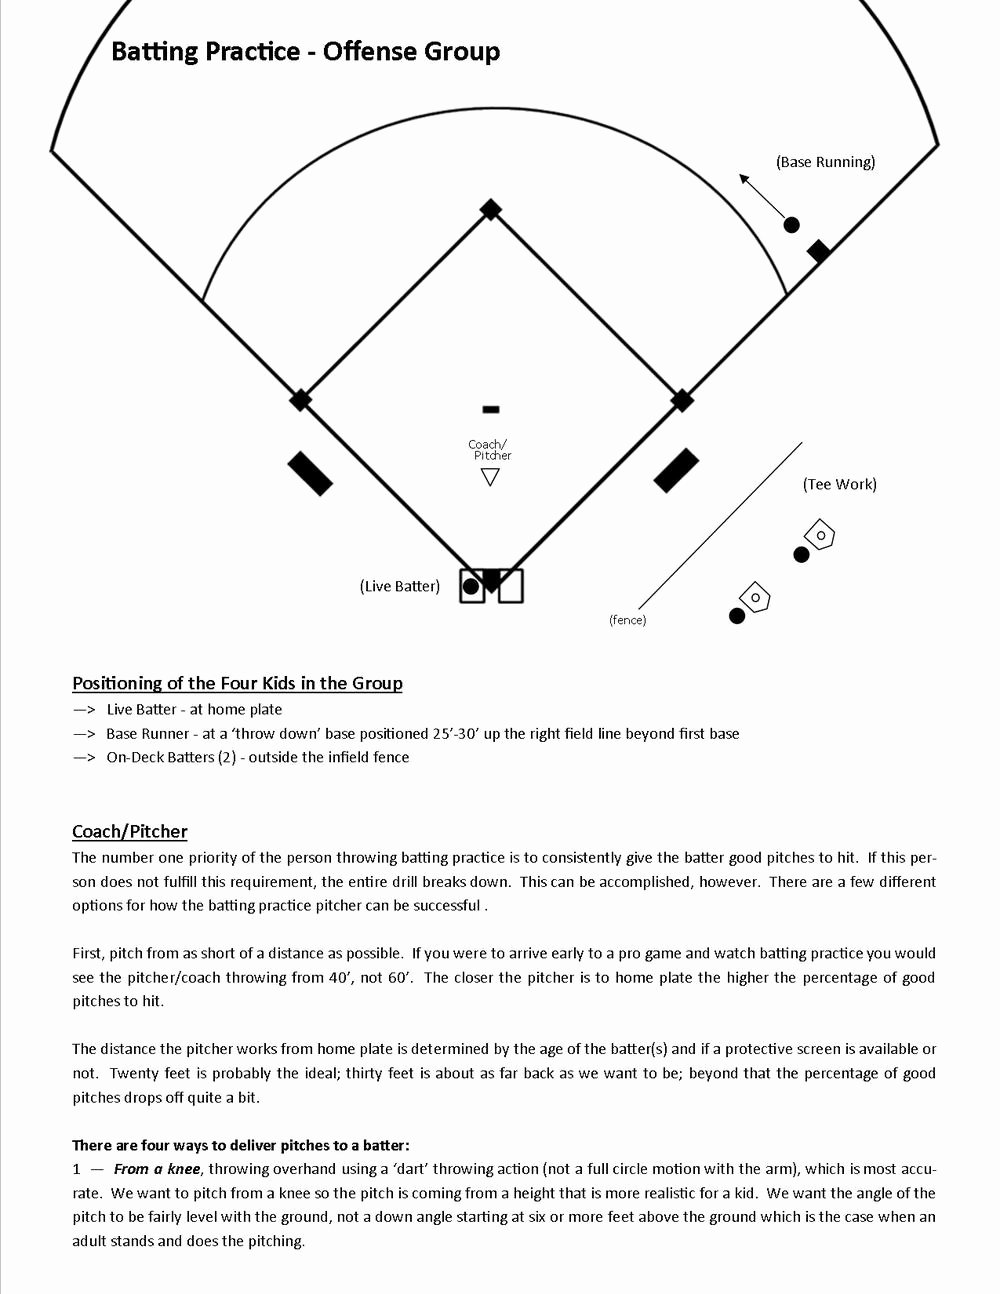 College Baseball Practice Plan Template Best Of Batting Practice — Baseball Positive